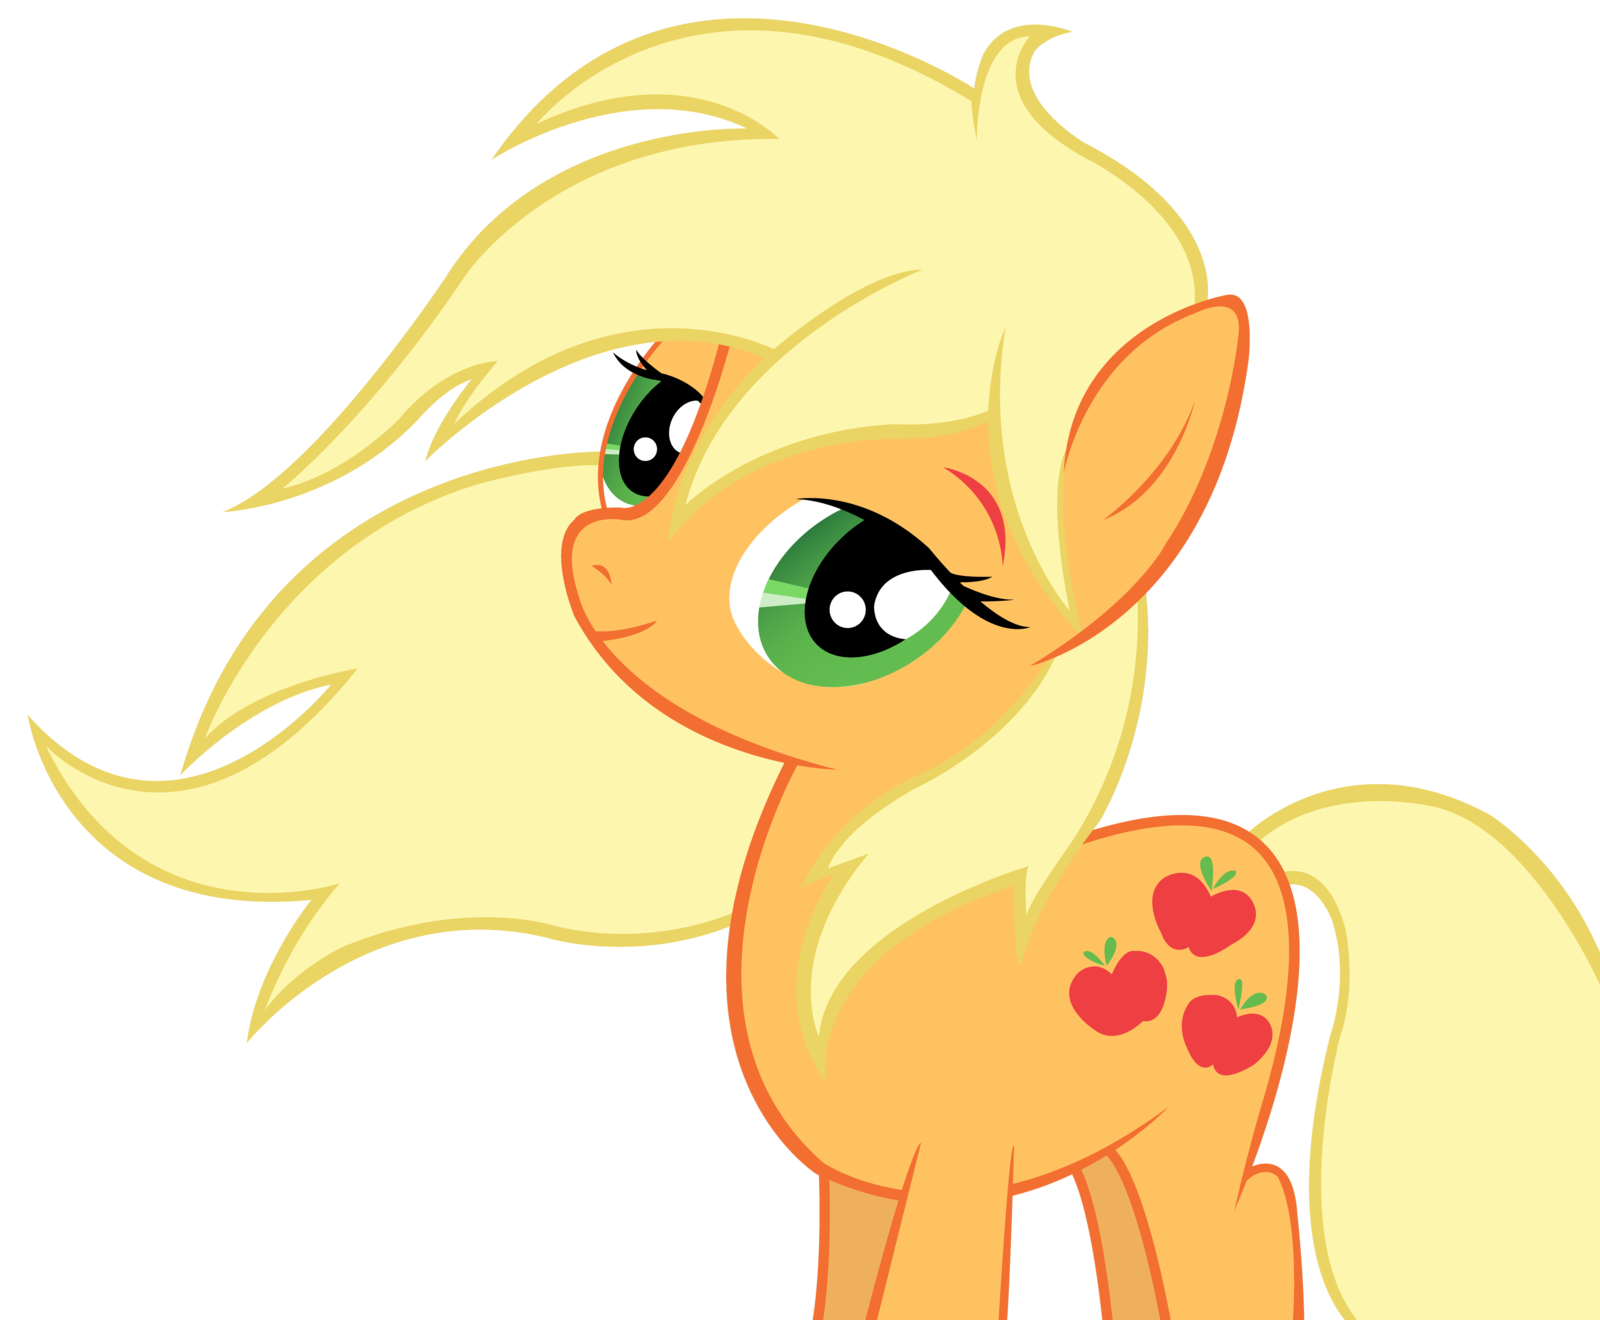 Drink apple jack clipart jpg black and white library Applejack looks so pretty with her hair down! | My Little Ponies ... jpg black and white library